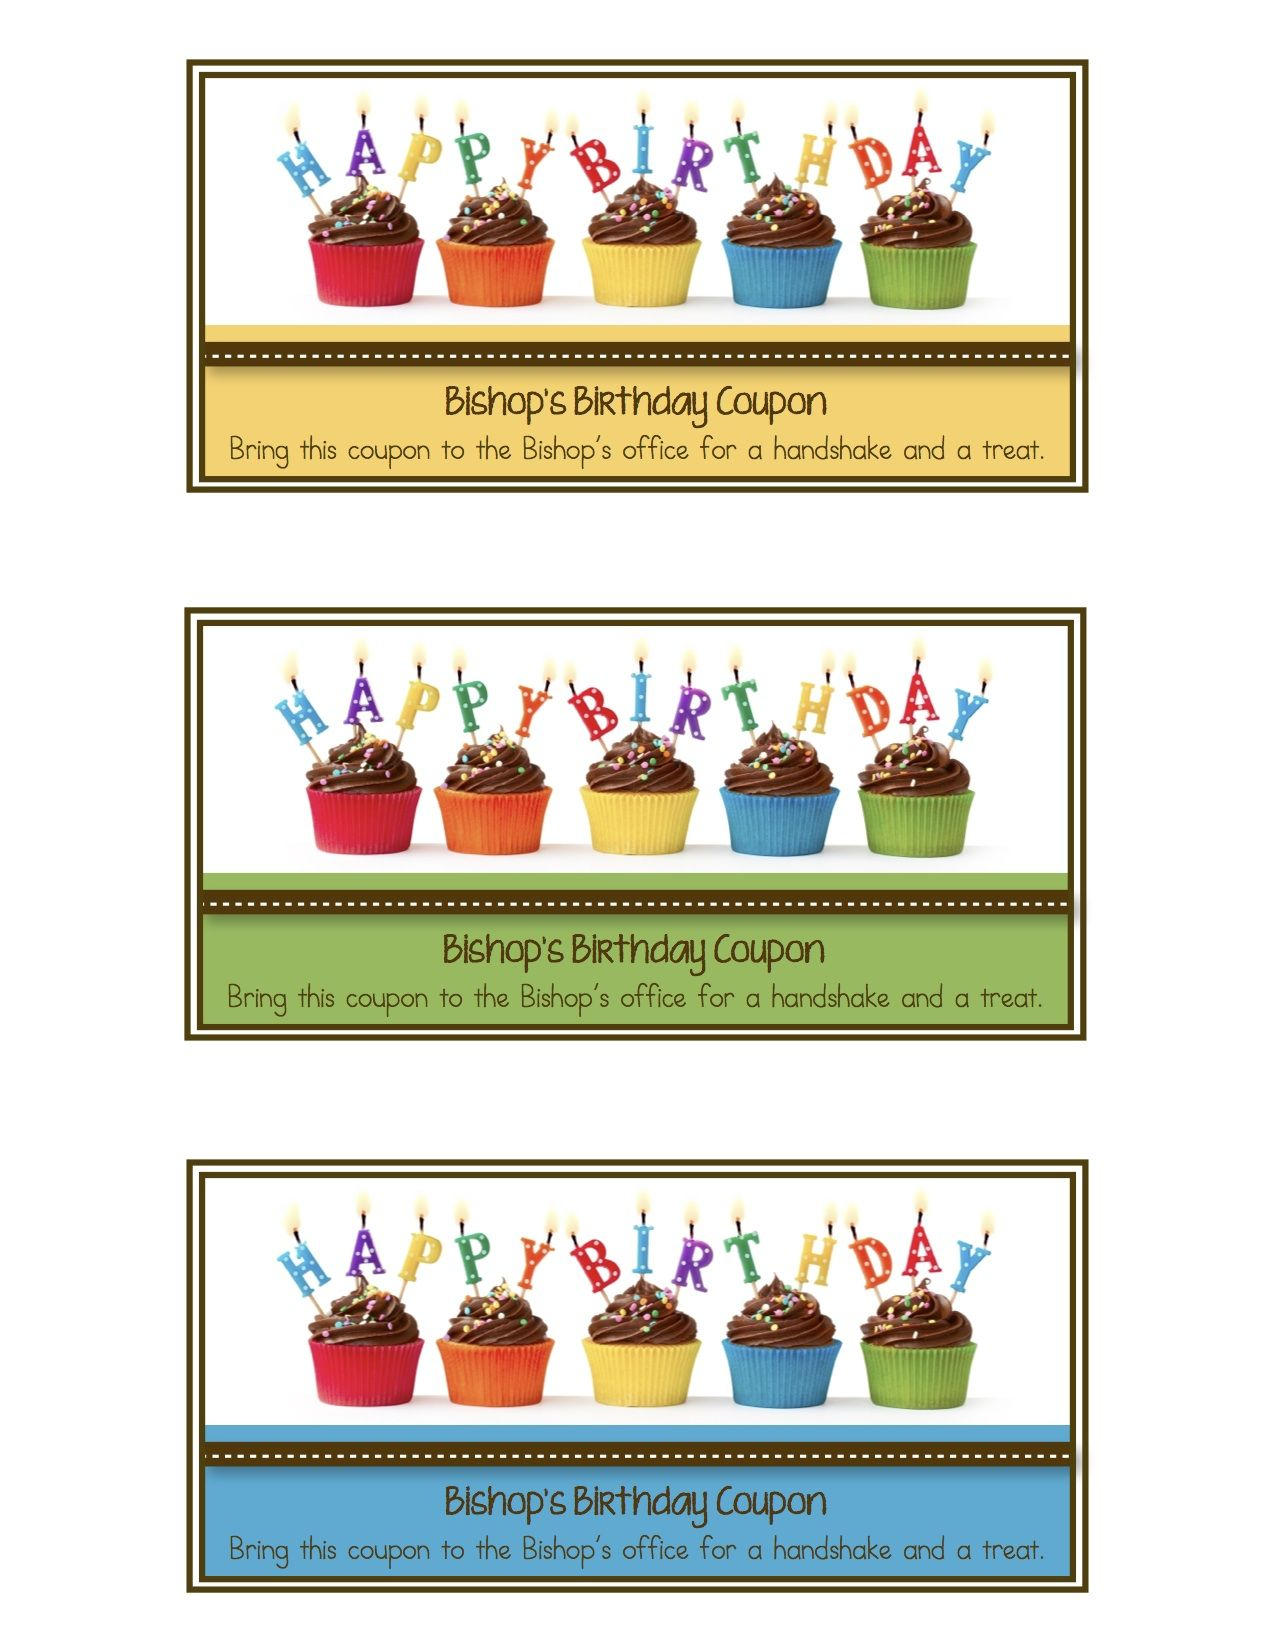 Lds clipart birthday. Look what i made